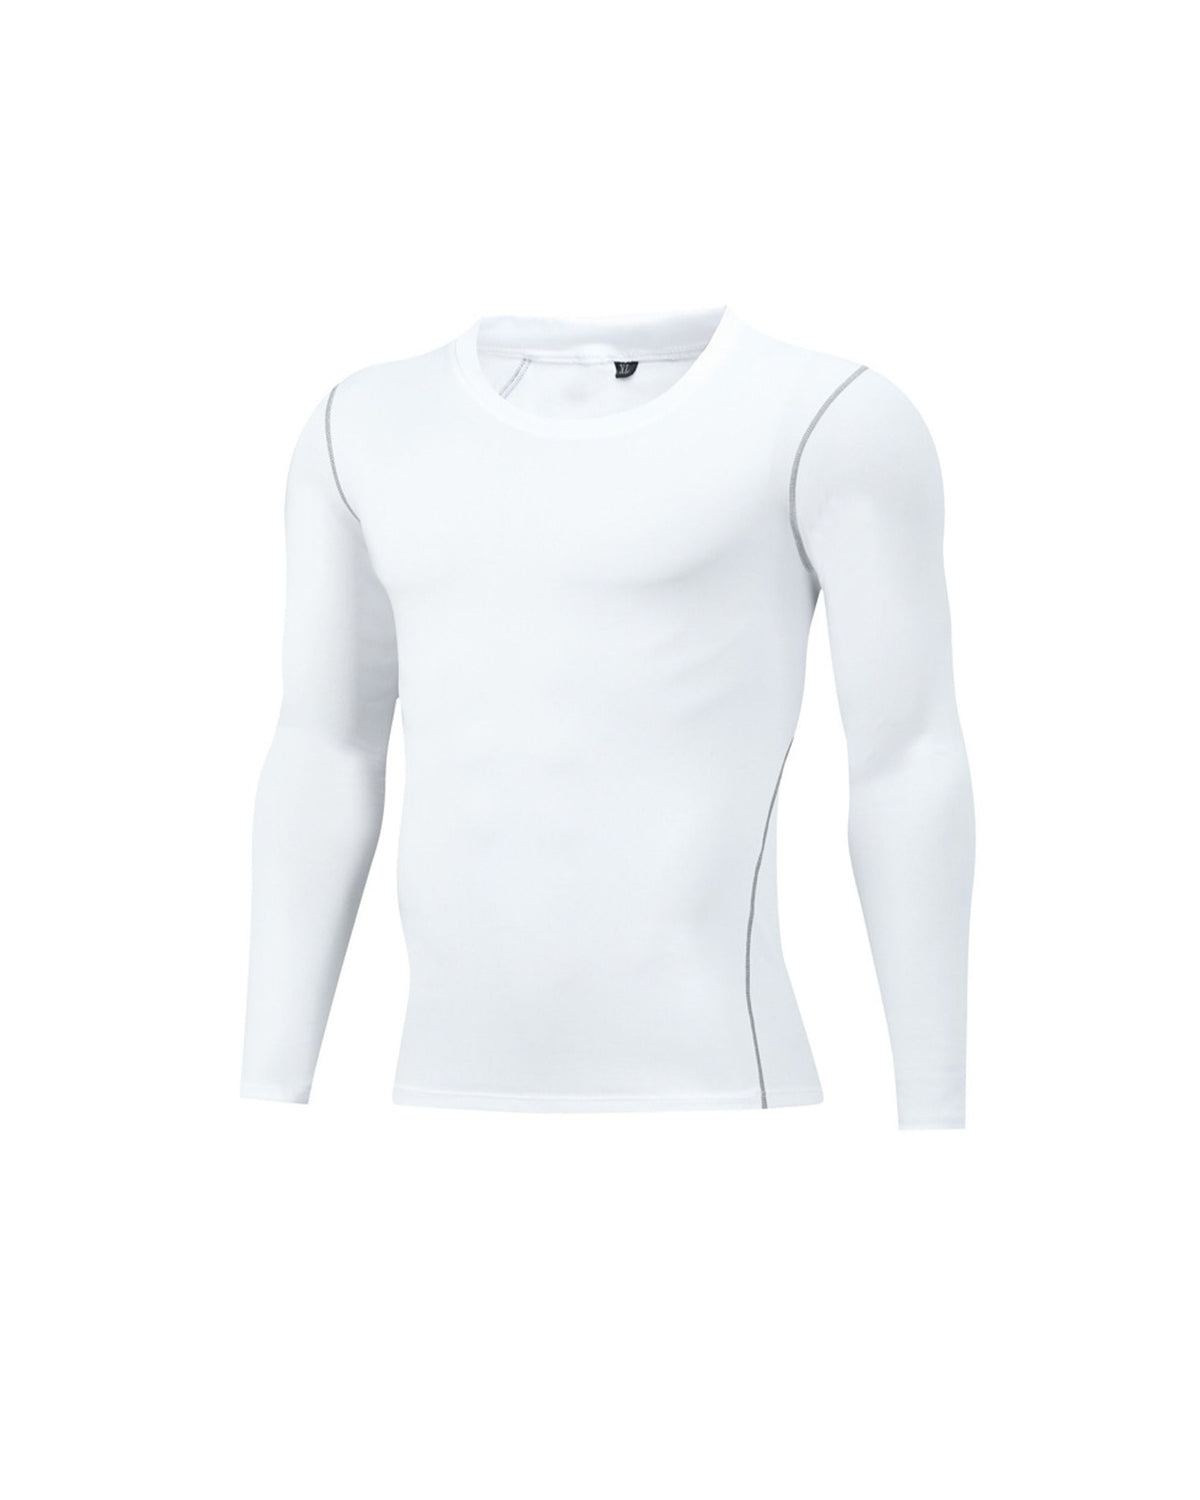 Long-Sleeve Quick-Dry Sports T-Shirt